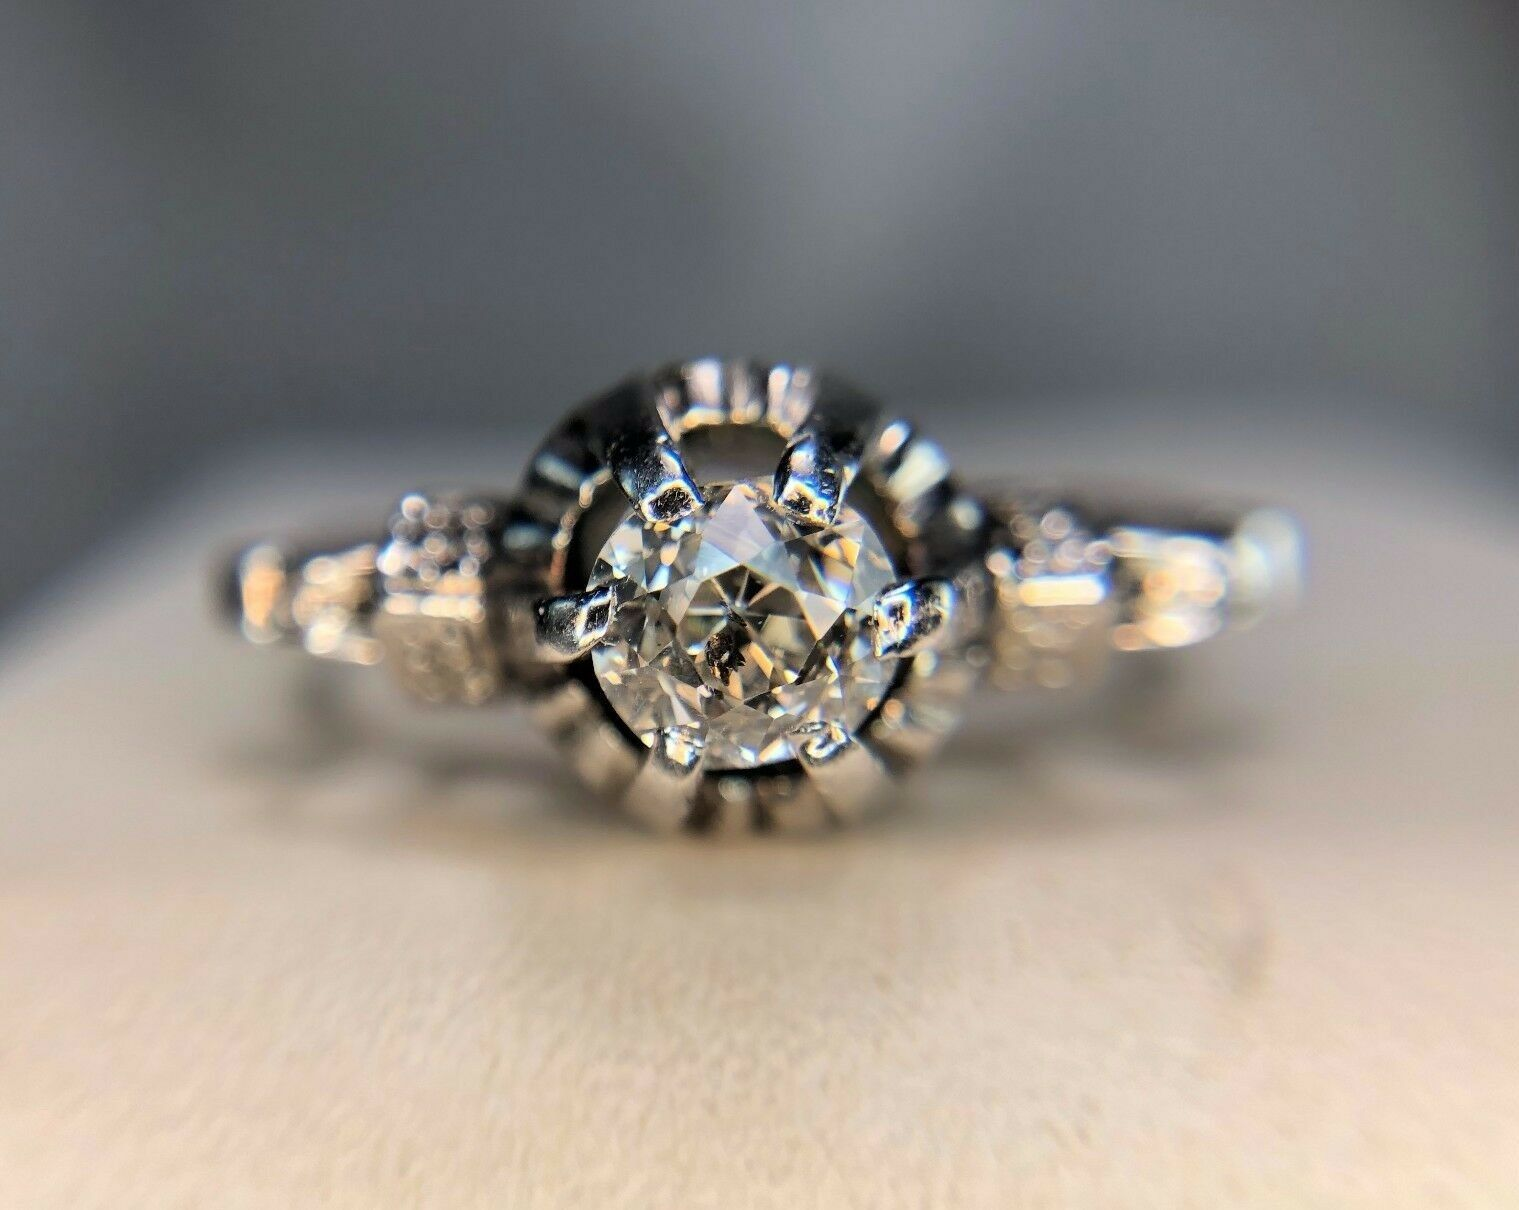 Vintage Art Deco 1920's Platinum Old Mine Diamond Engagement Ring 1 2 ct